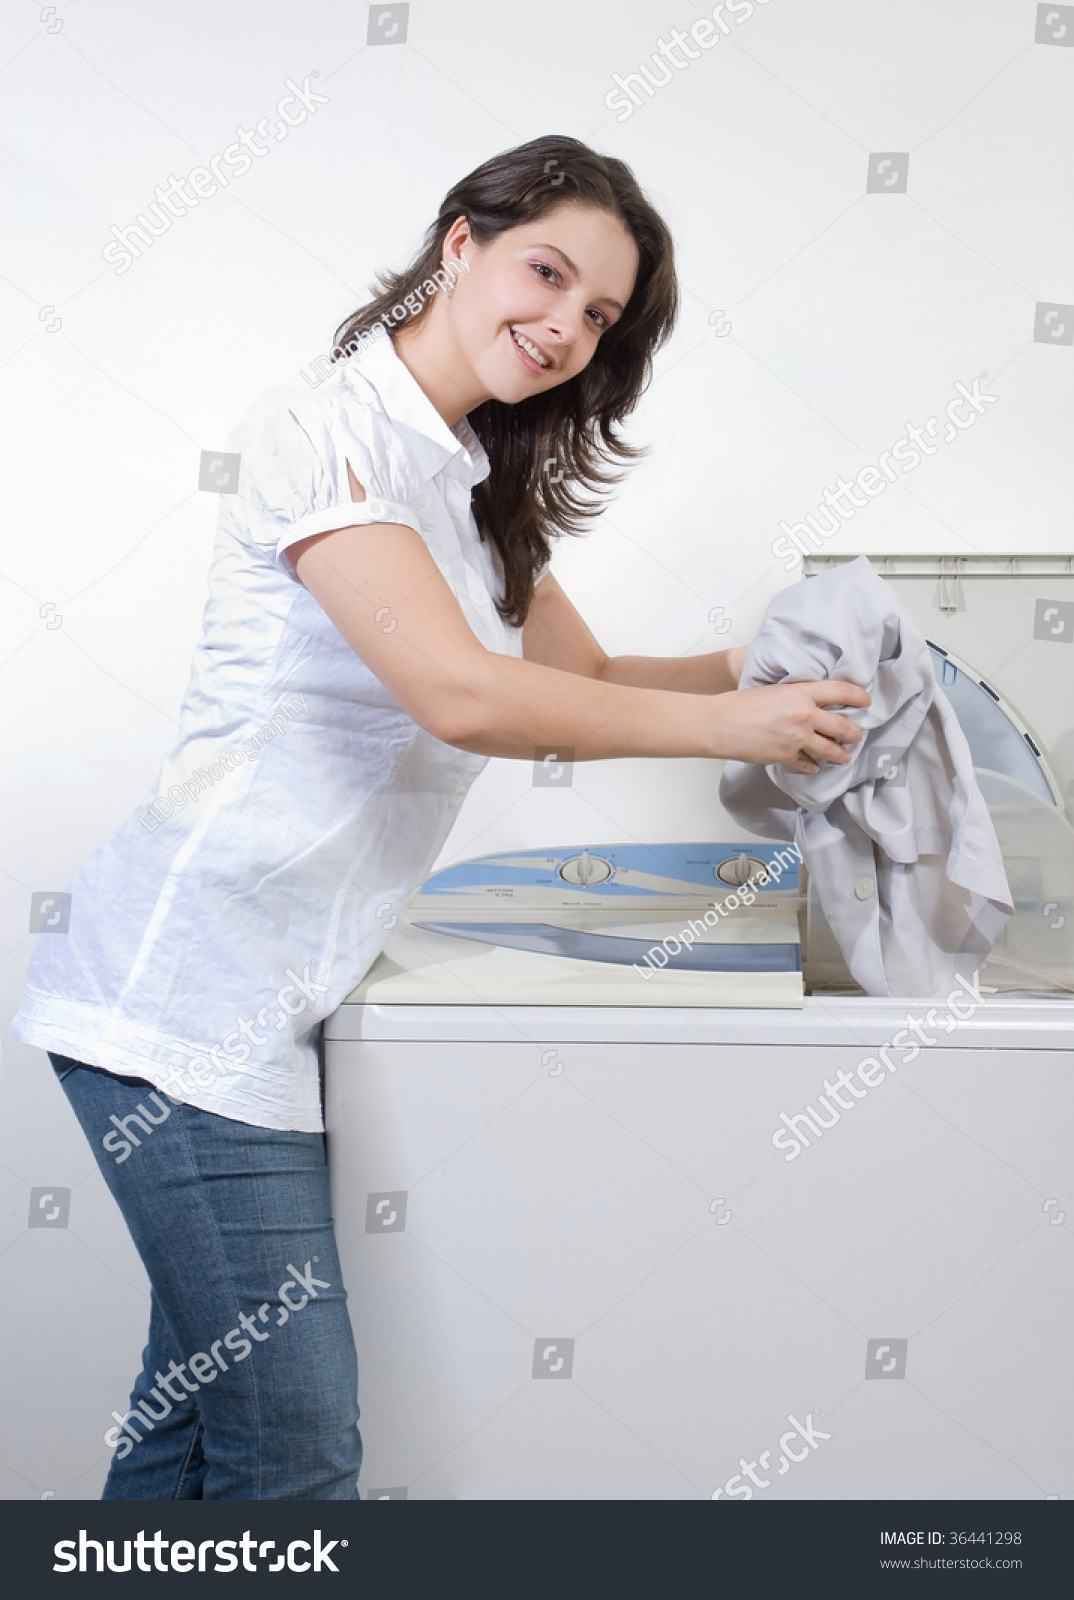 Woman Putting Clothes In Washing Machine Close Up Stock